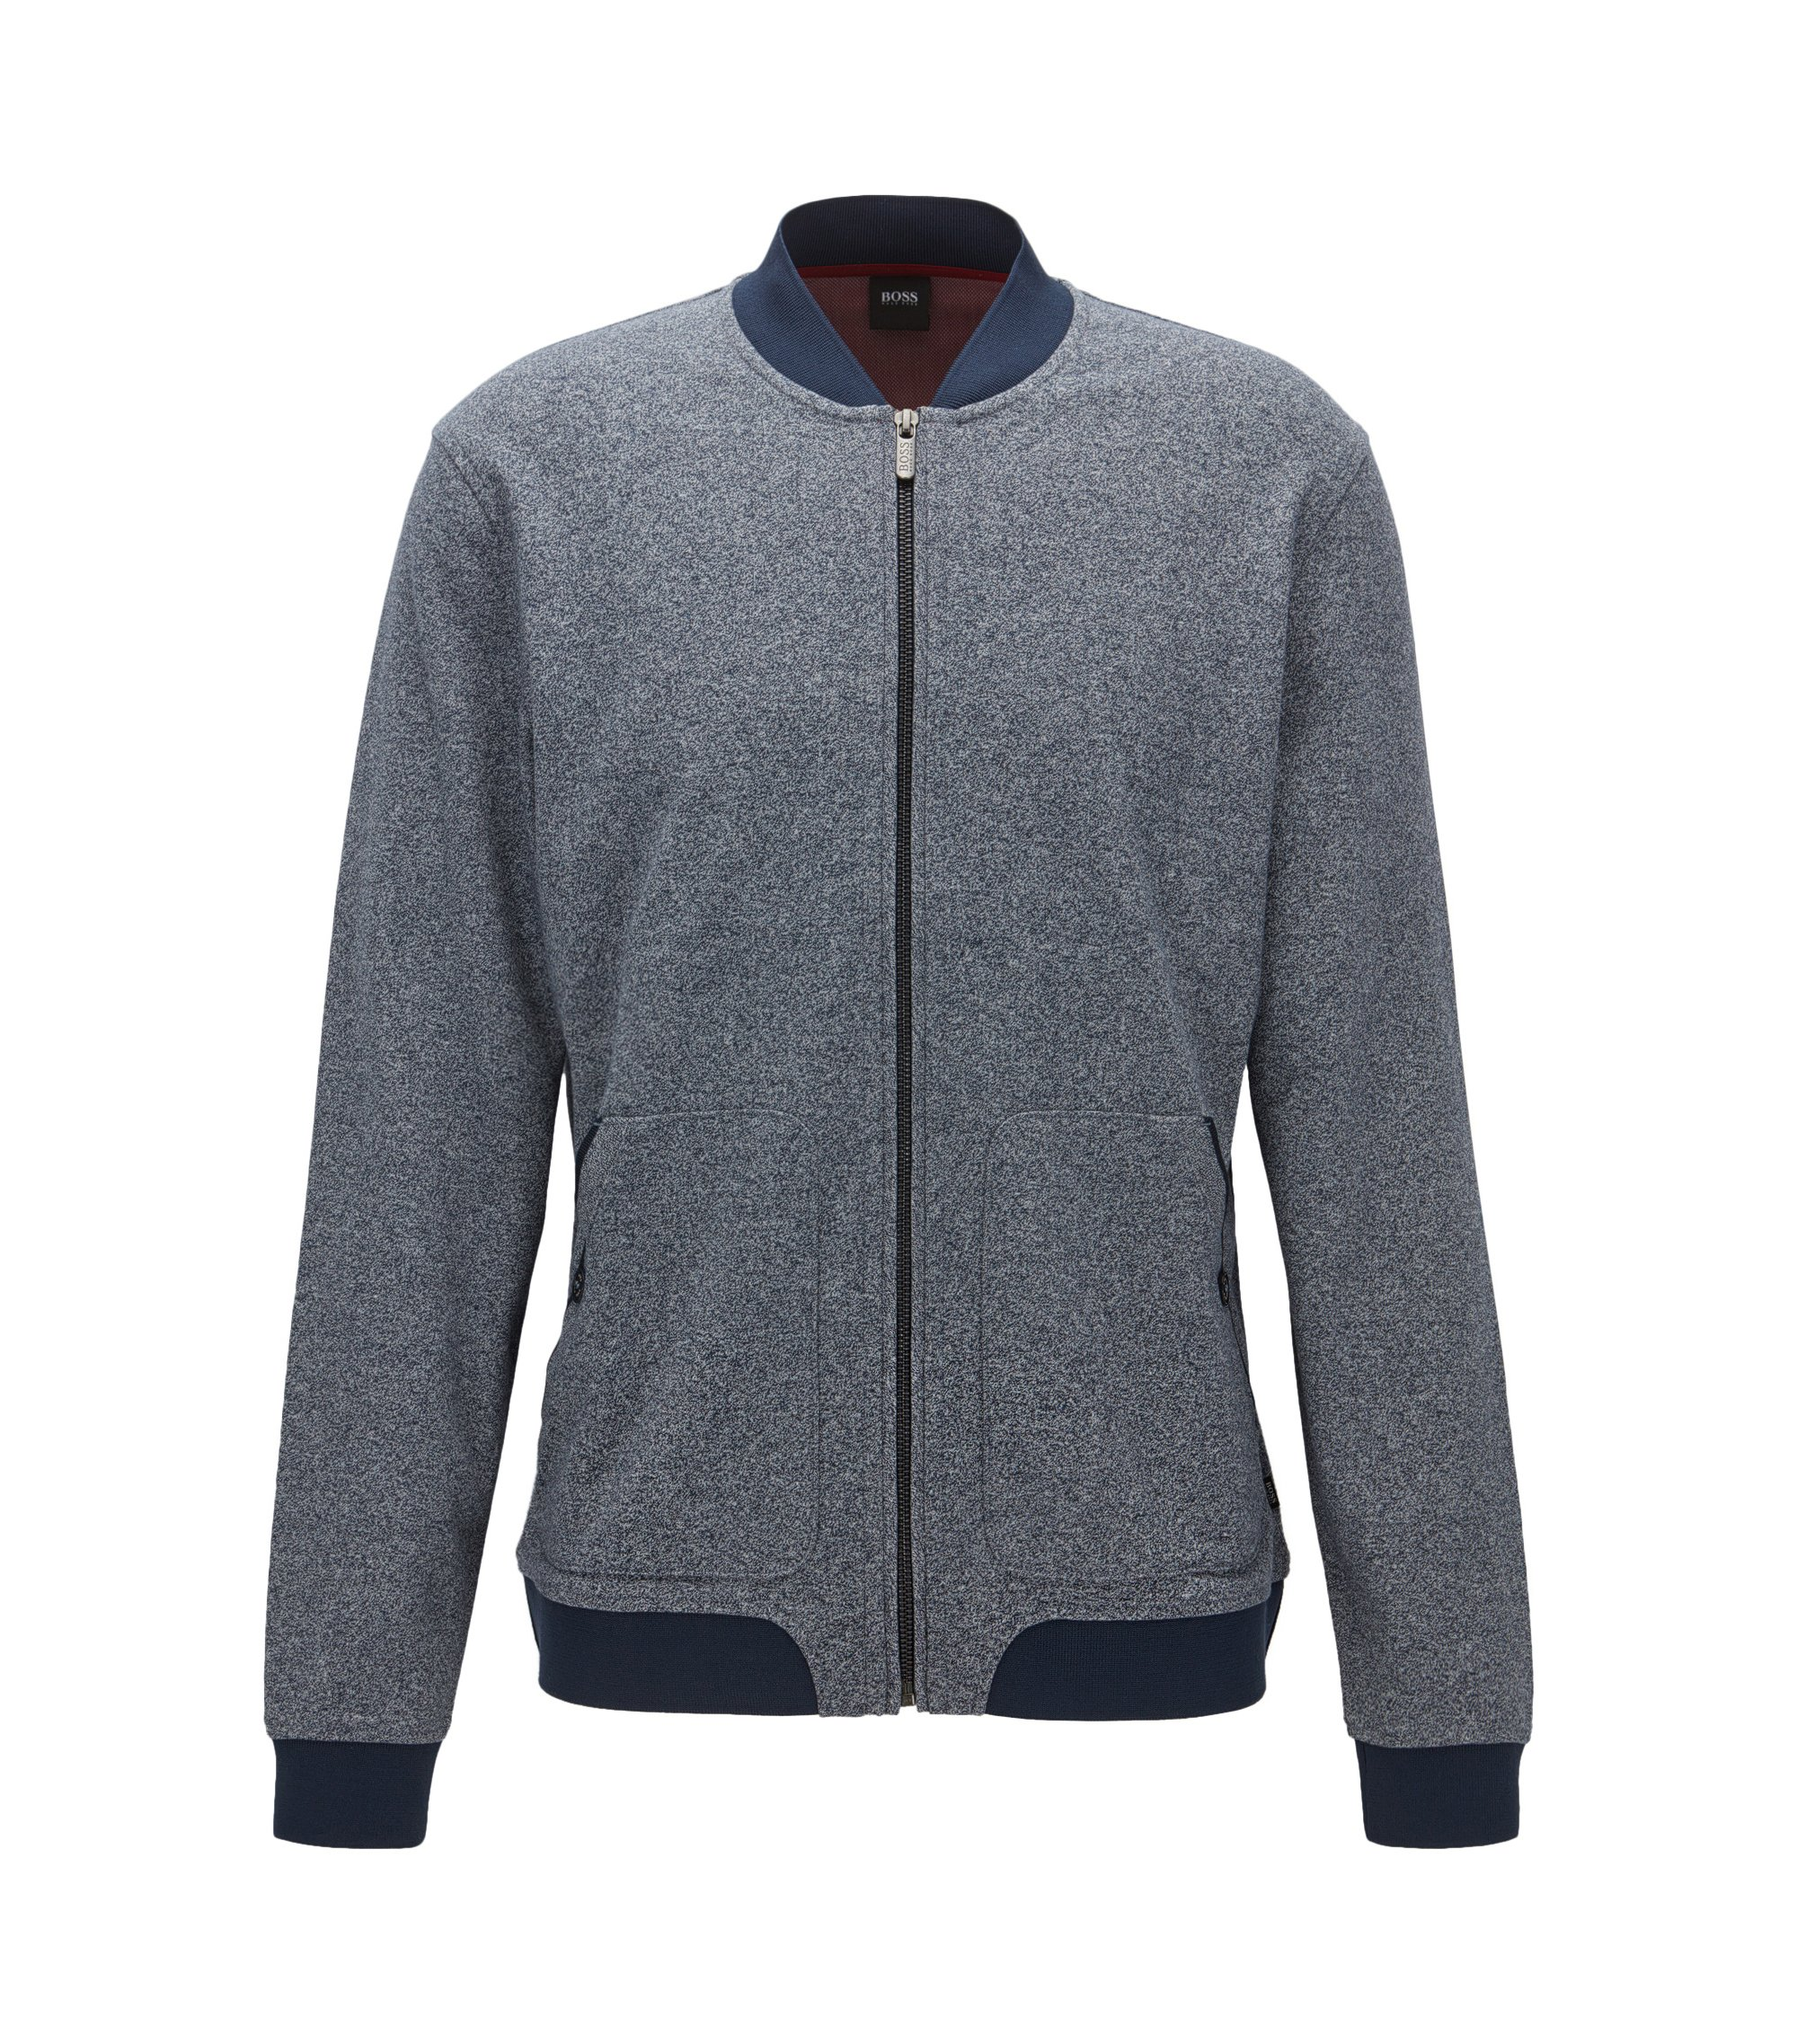 Melange cotton-blend jersey jacket in a regular fit, Dark Blue